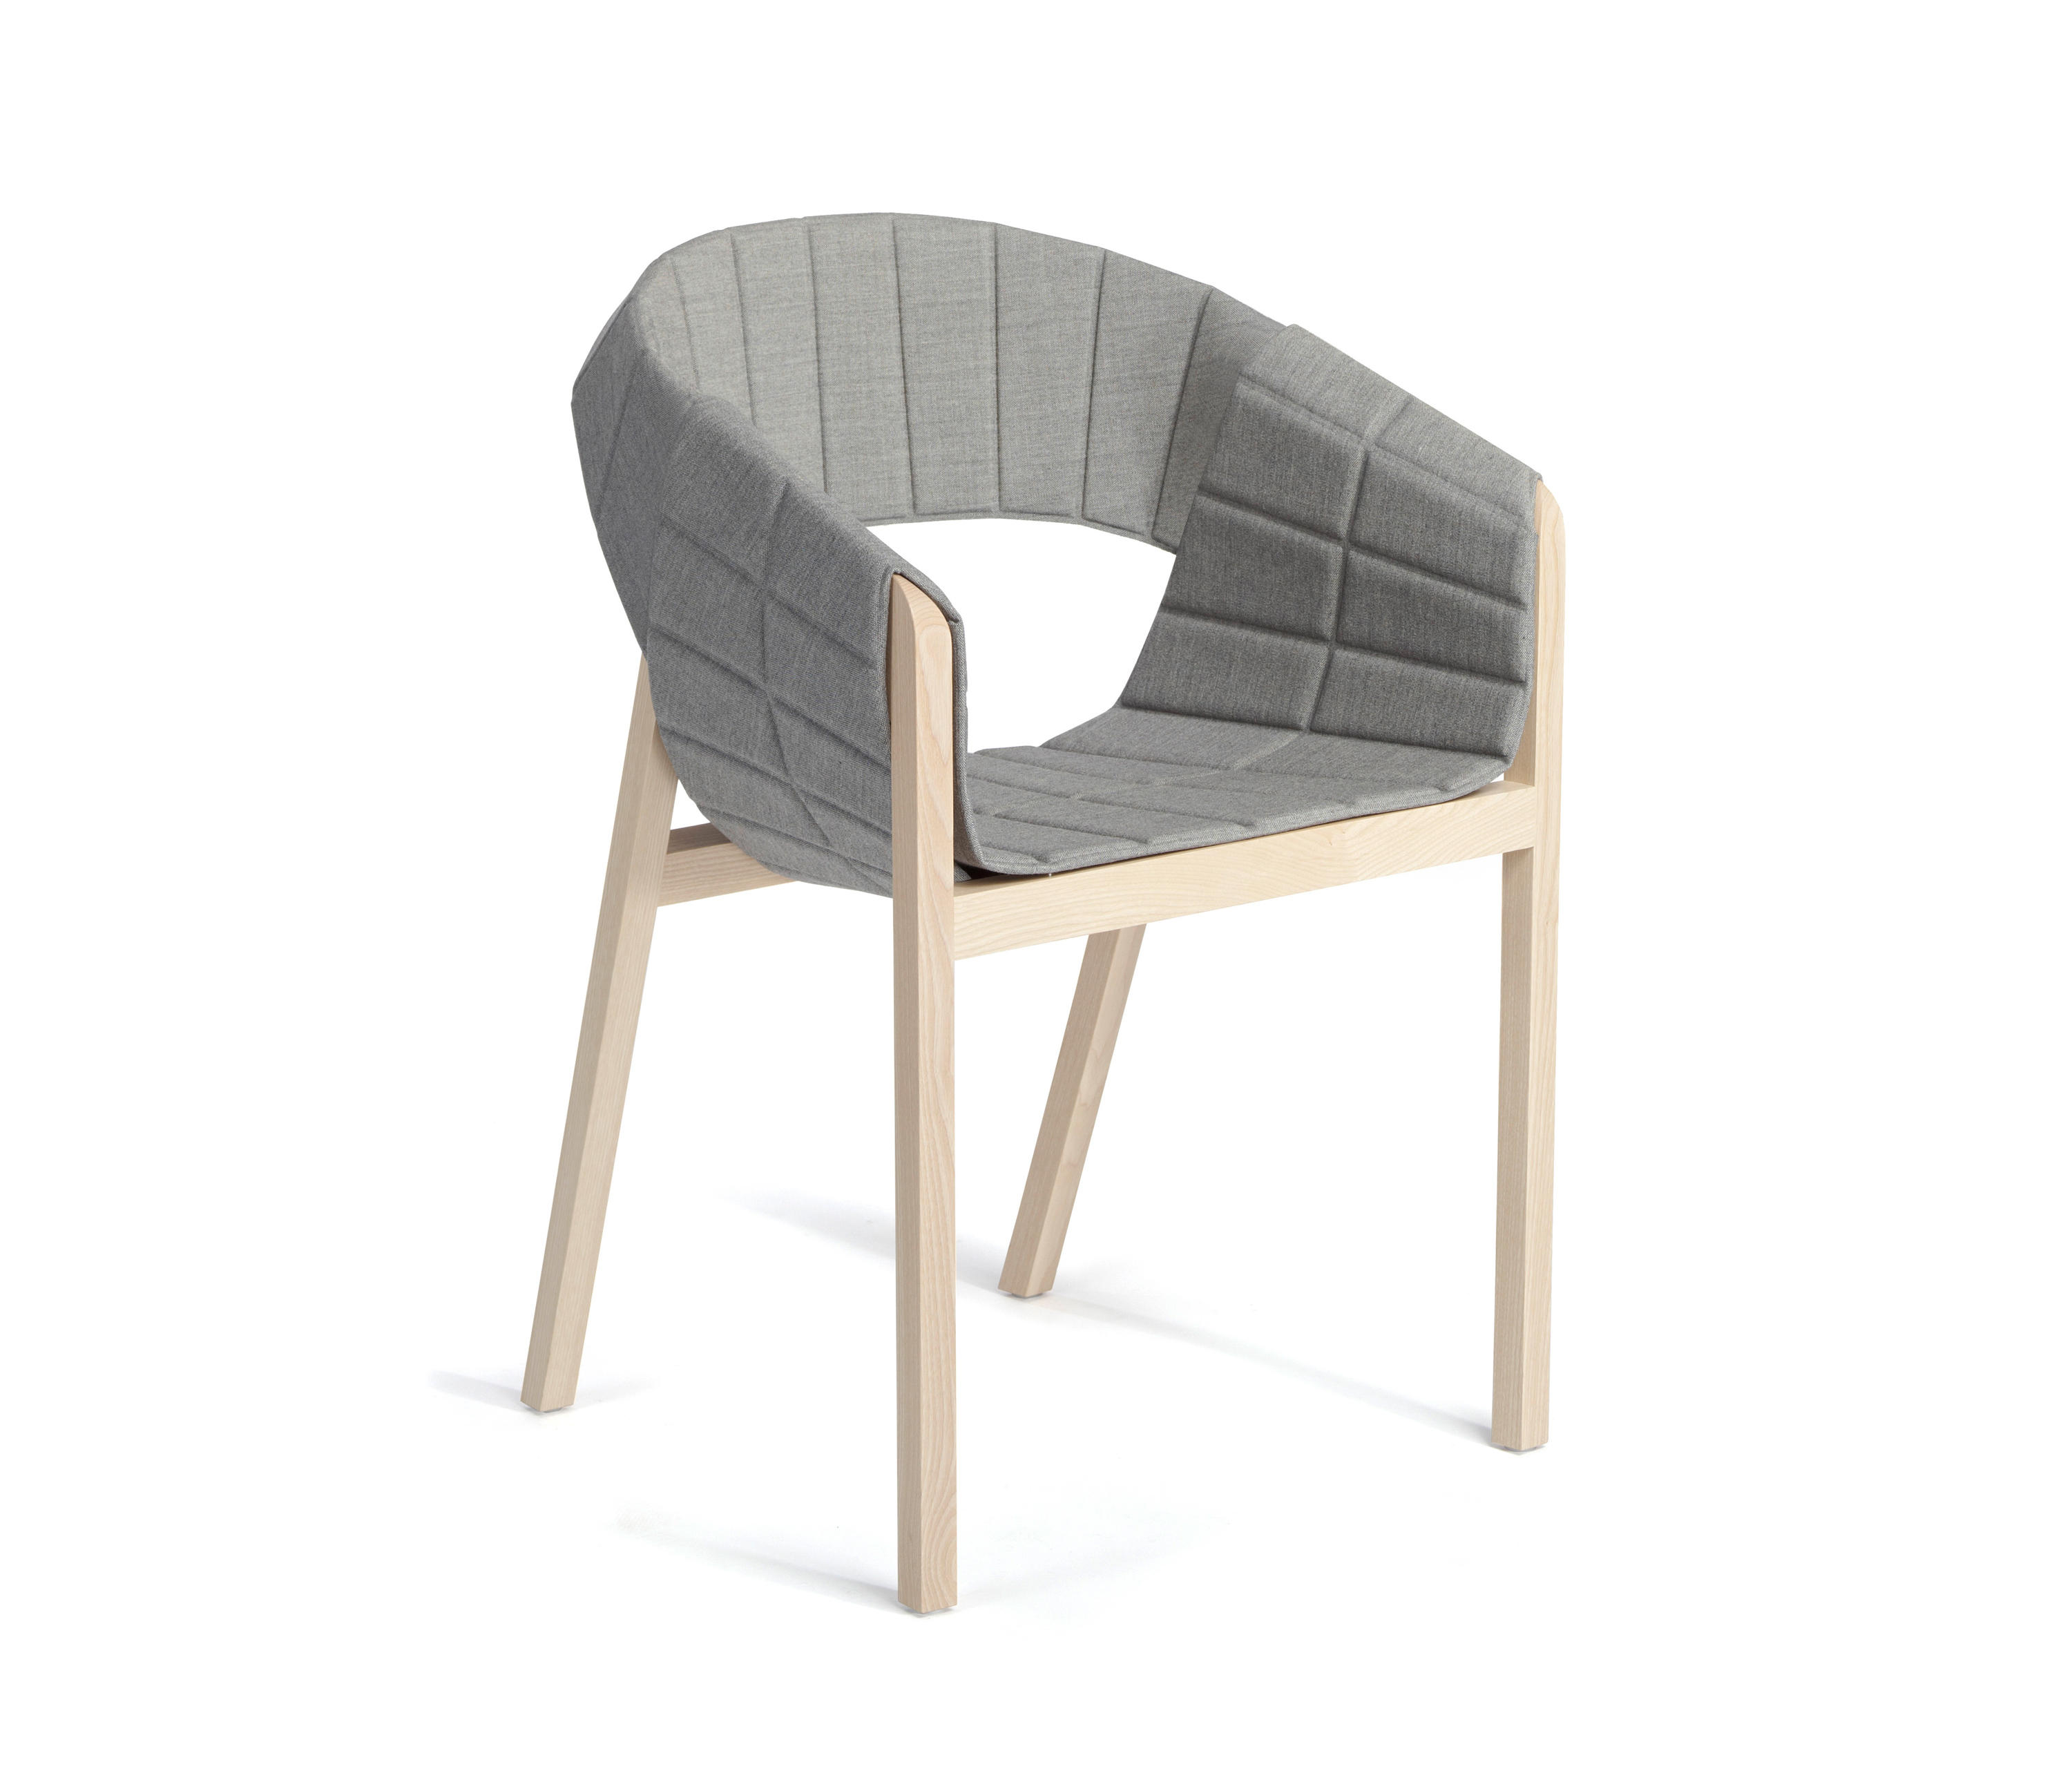 Wogg Roya Armchair By Chairs